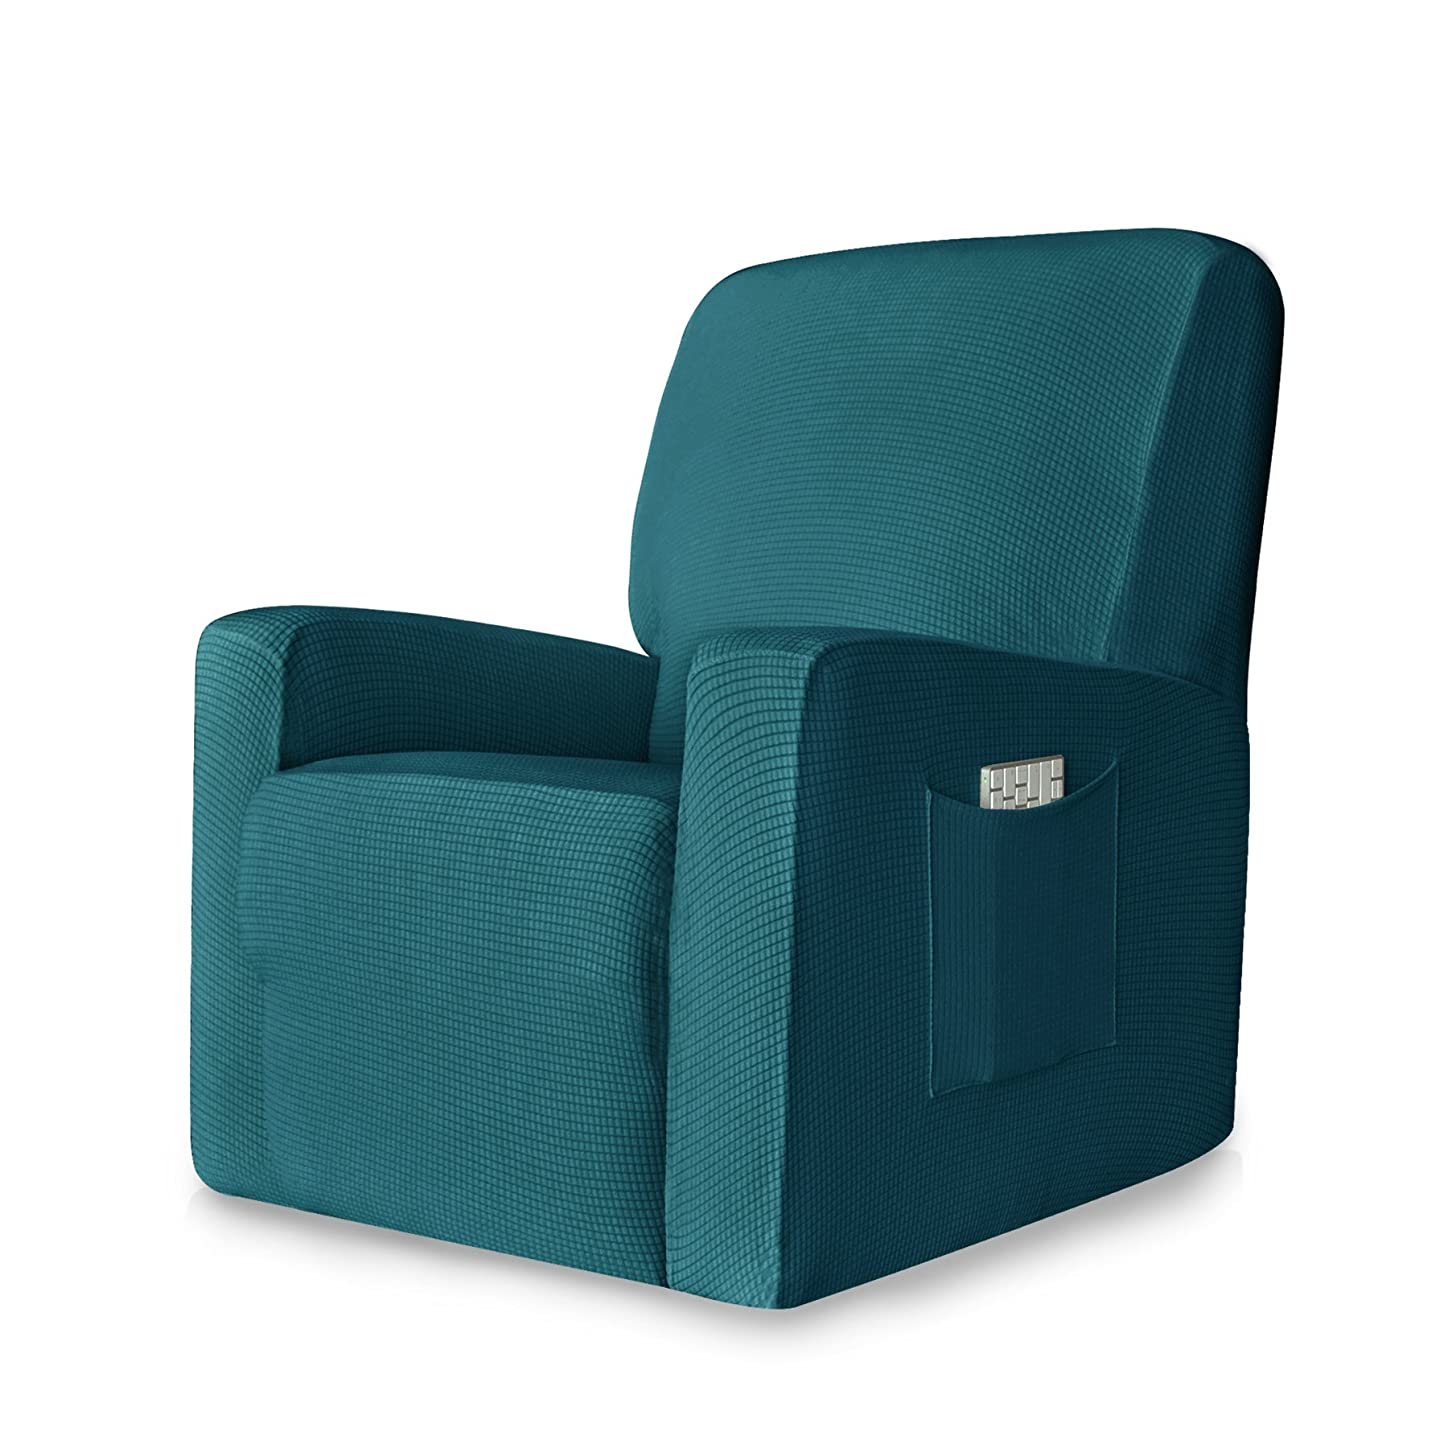 変動する適度なの面では(Recliner, Blue) - CHUN YI 1-Piece Stretch Spandex Jacquard Recliner Chair Slipcovers (Recliner, Blue)